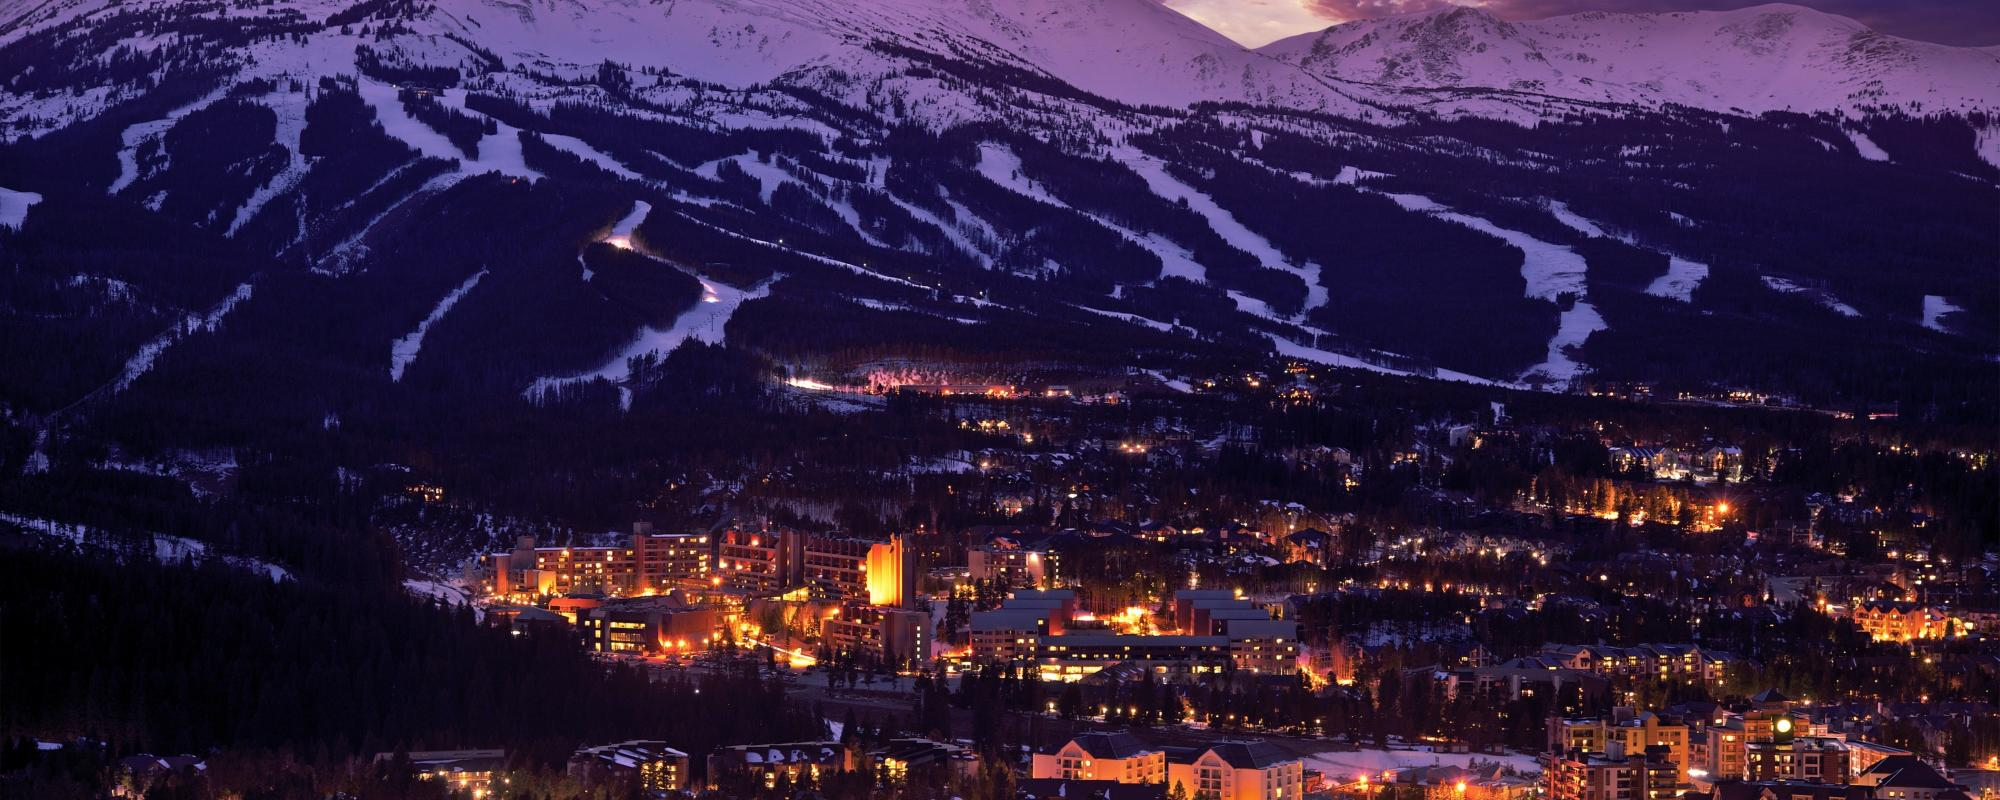 Breckenridge in winter at night